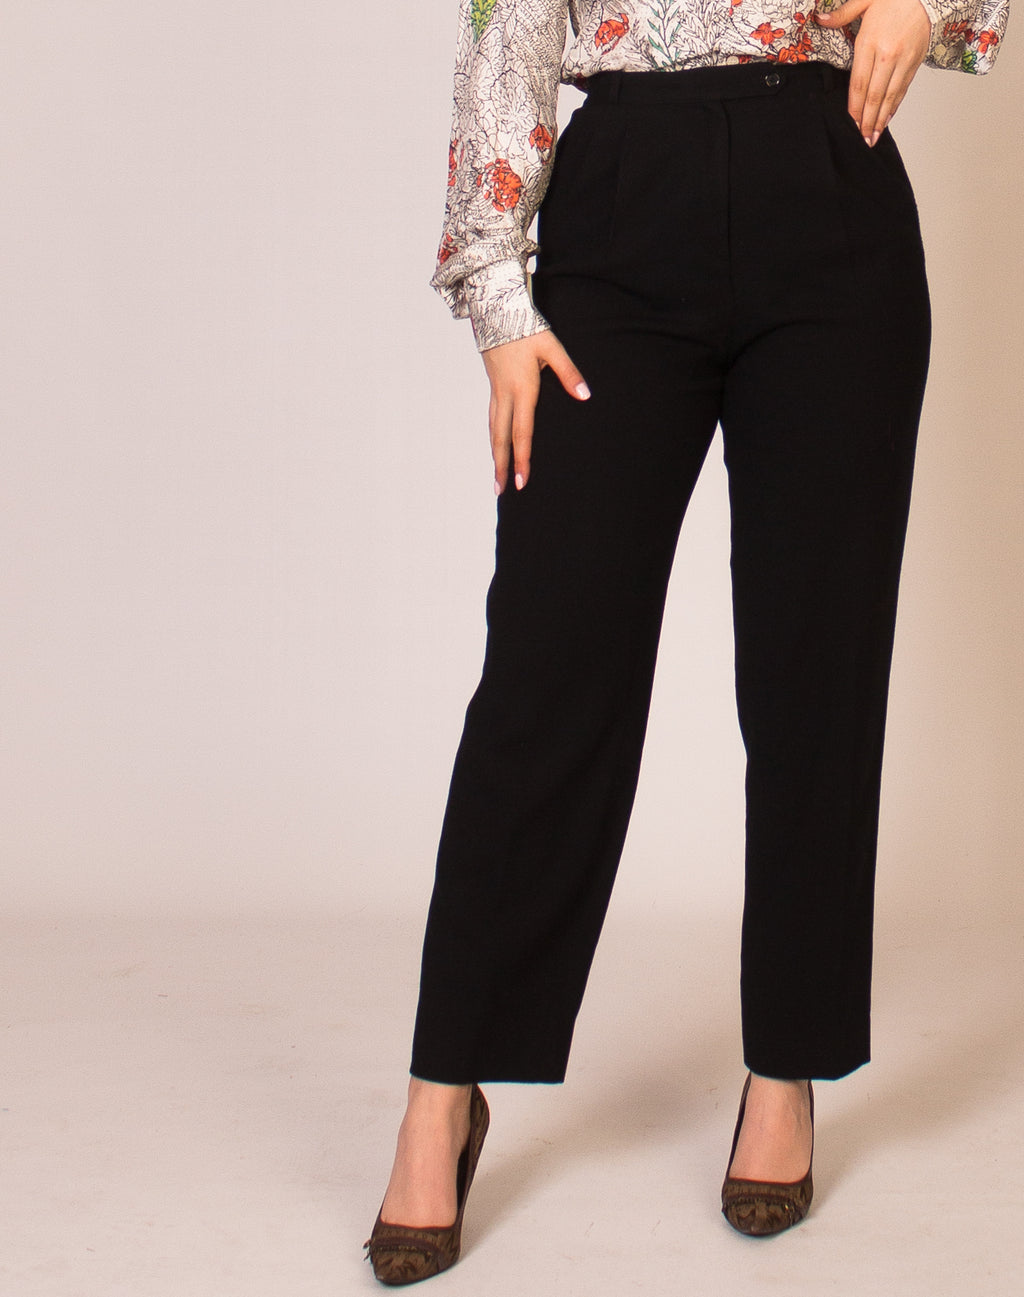 BLACK HIGH WAIST CIGARETTE TROUSERS